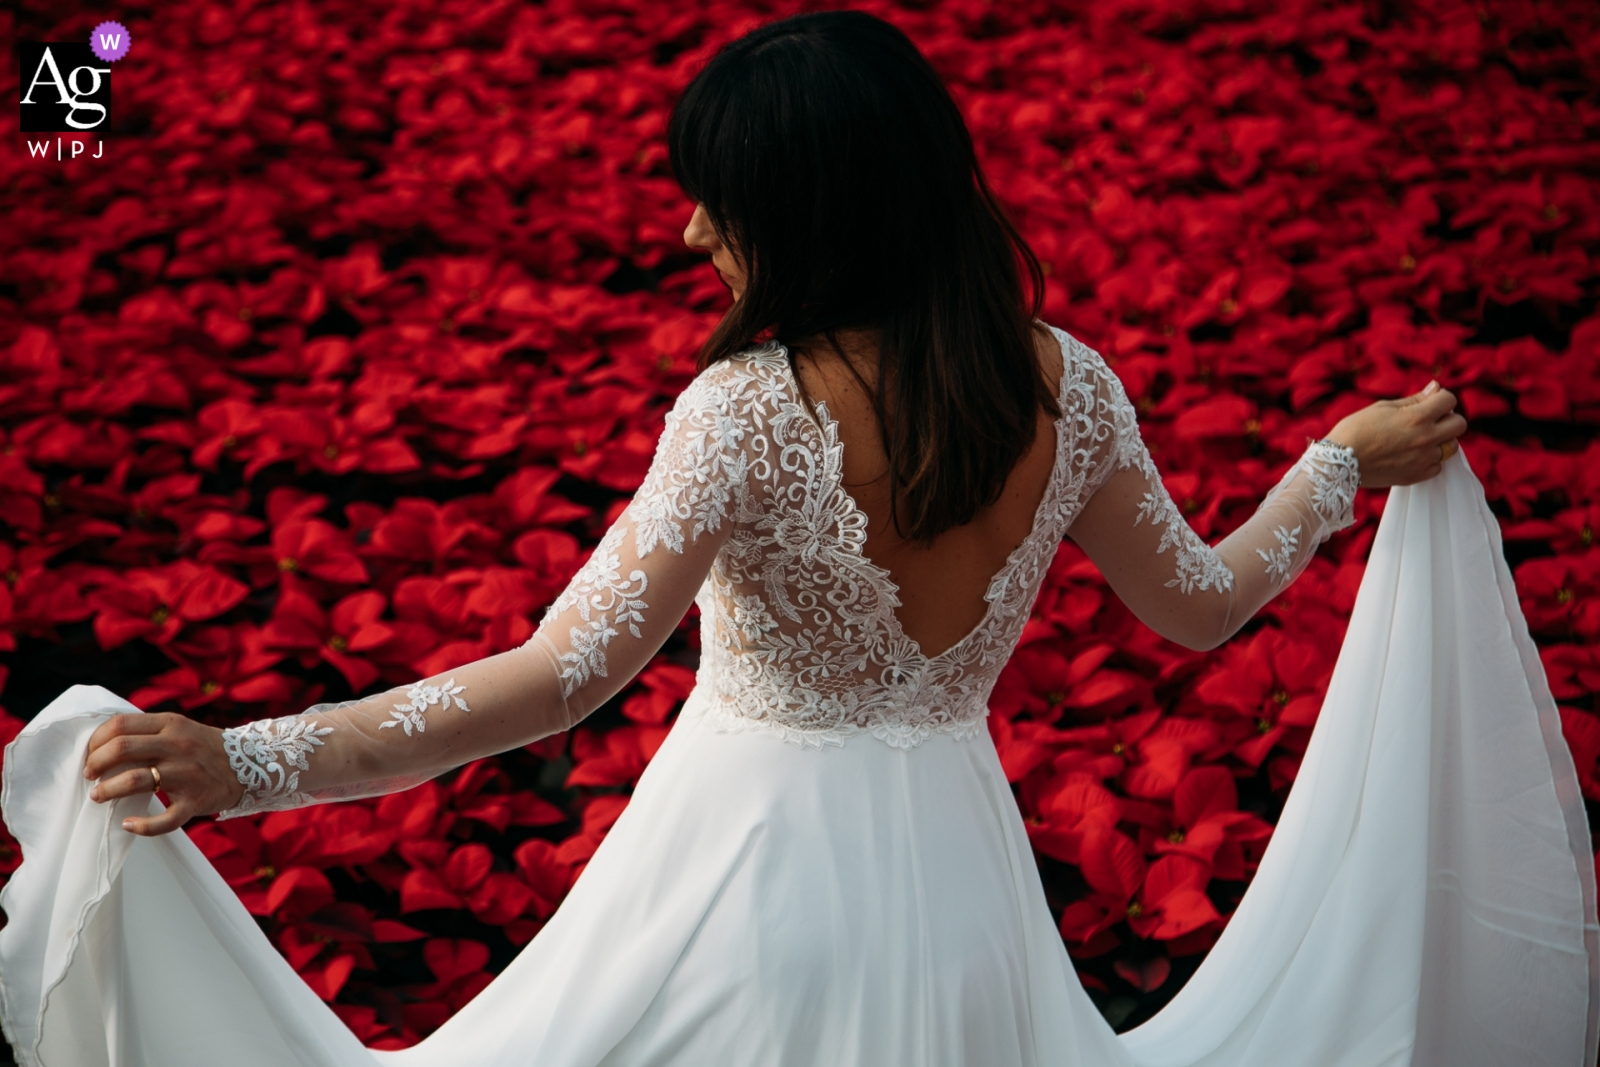 Sicily dancing bride photo with white dress and red flower backdrop